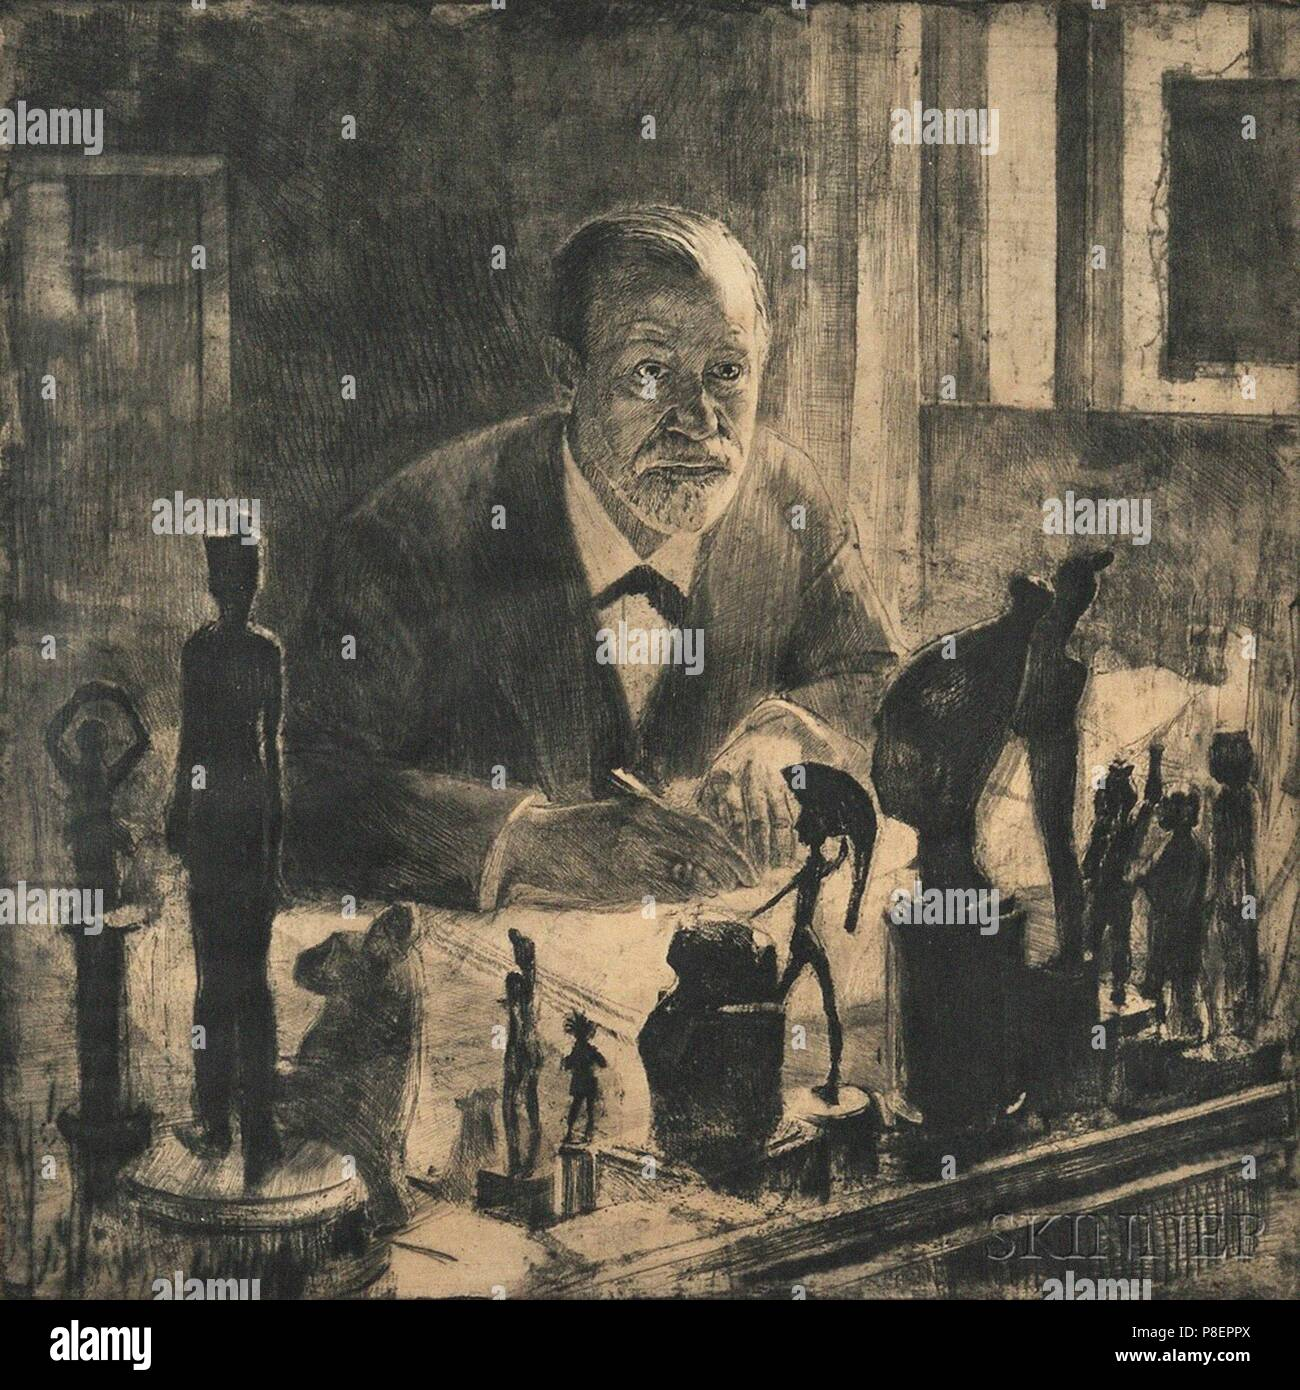 Portrait of Sigmund Freud. Museum: PRIVATE COLLECTION. - Stock Image